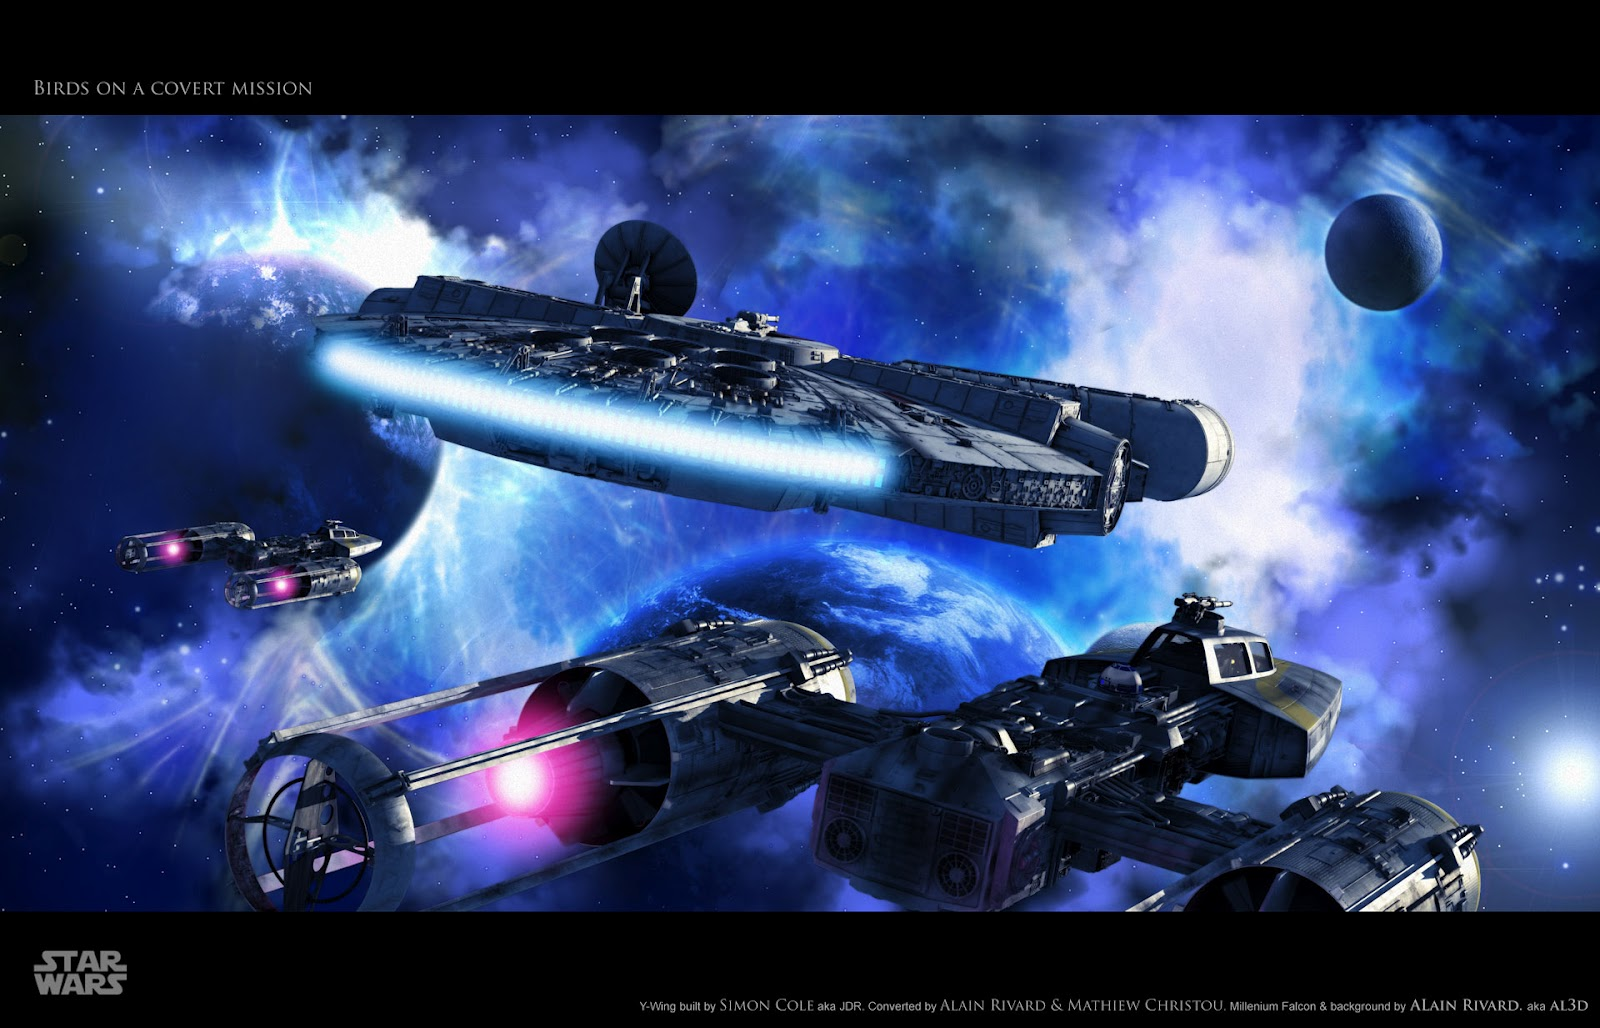 HD WALLPAPERS STAR WARS HD PICTURES 1600x1028